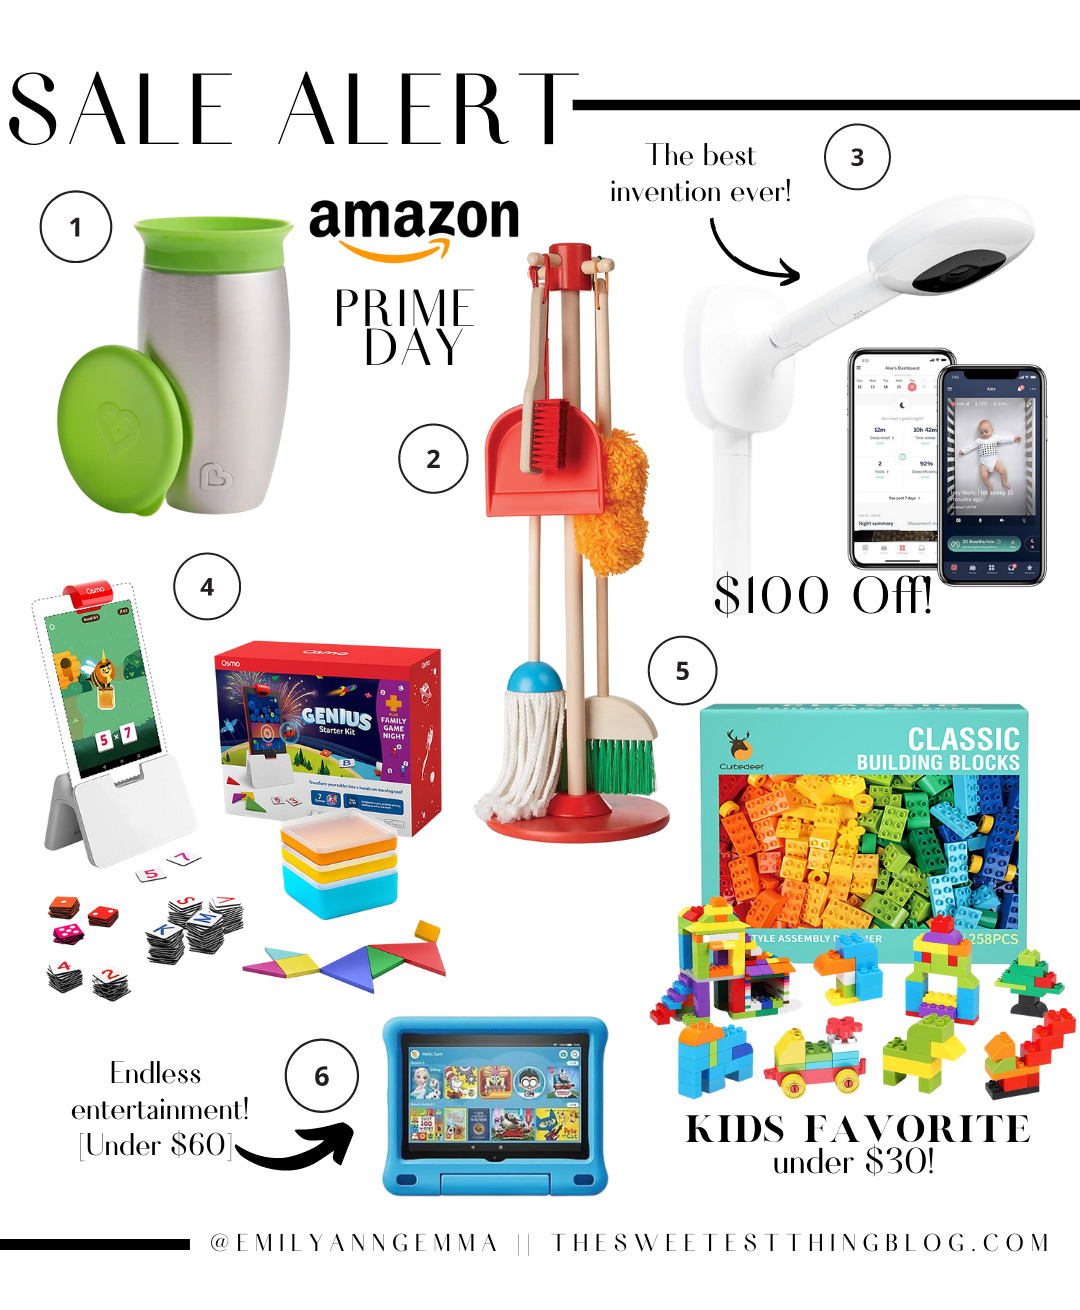 Amazon Prime Day by popular US life and Style blog, The Sweetest Thing: collage image of classic building blocks, Melissa and Doug cleaning playlet, Nanit pro baby monitor, Munchkin Stainless Steel sippy cup, Genius starter kit, and Amazon fire kindle.